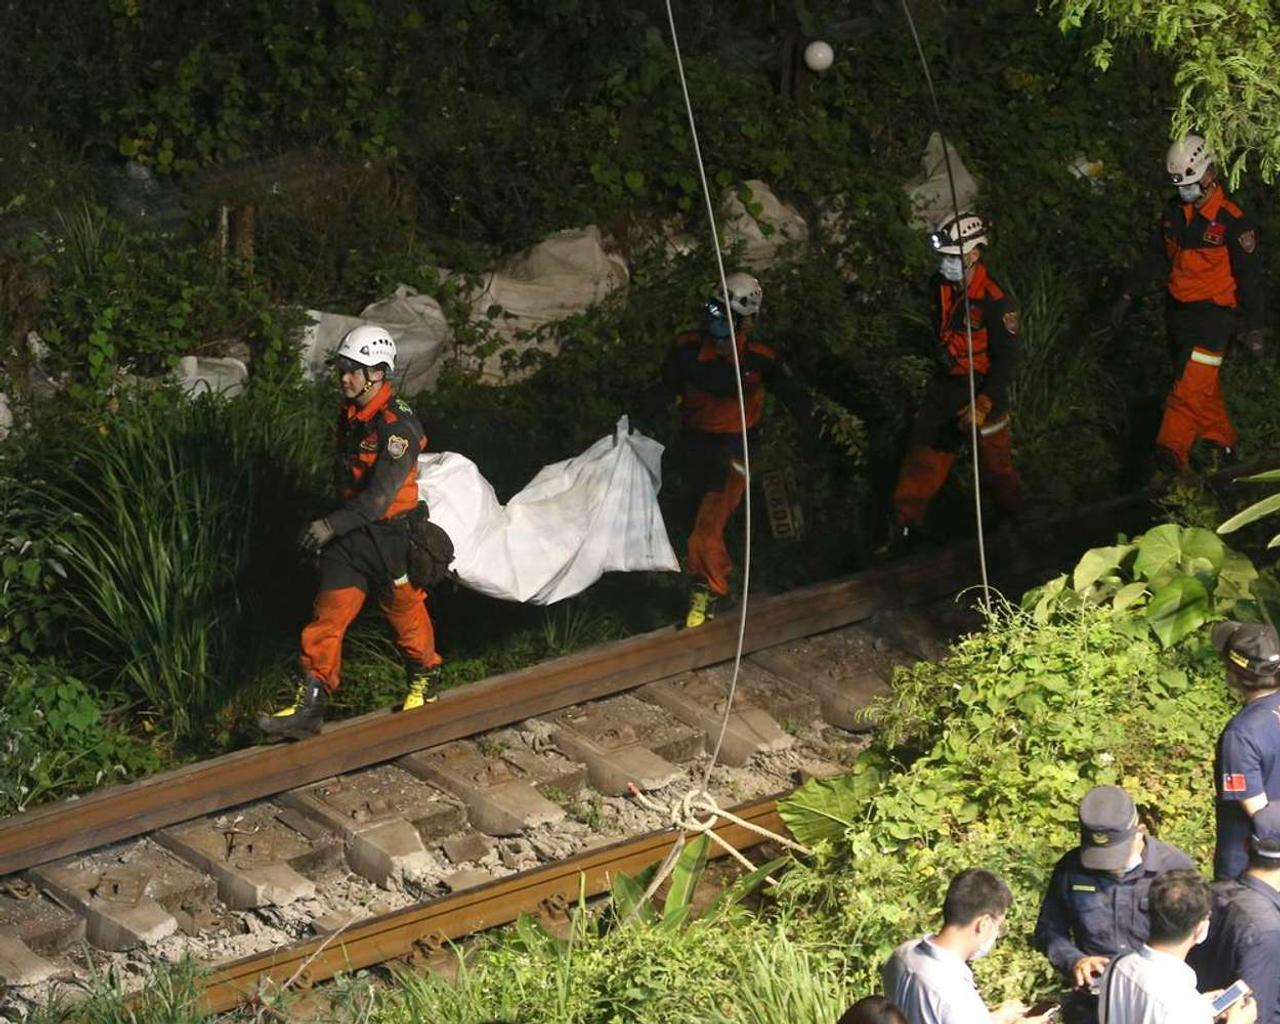 In Taiwan, a train collides with a truck that has slid into the track, killing 51 people.